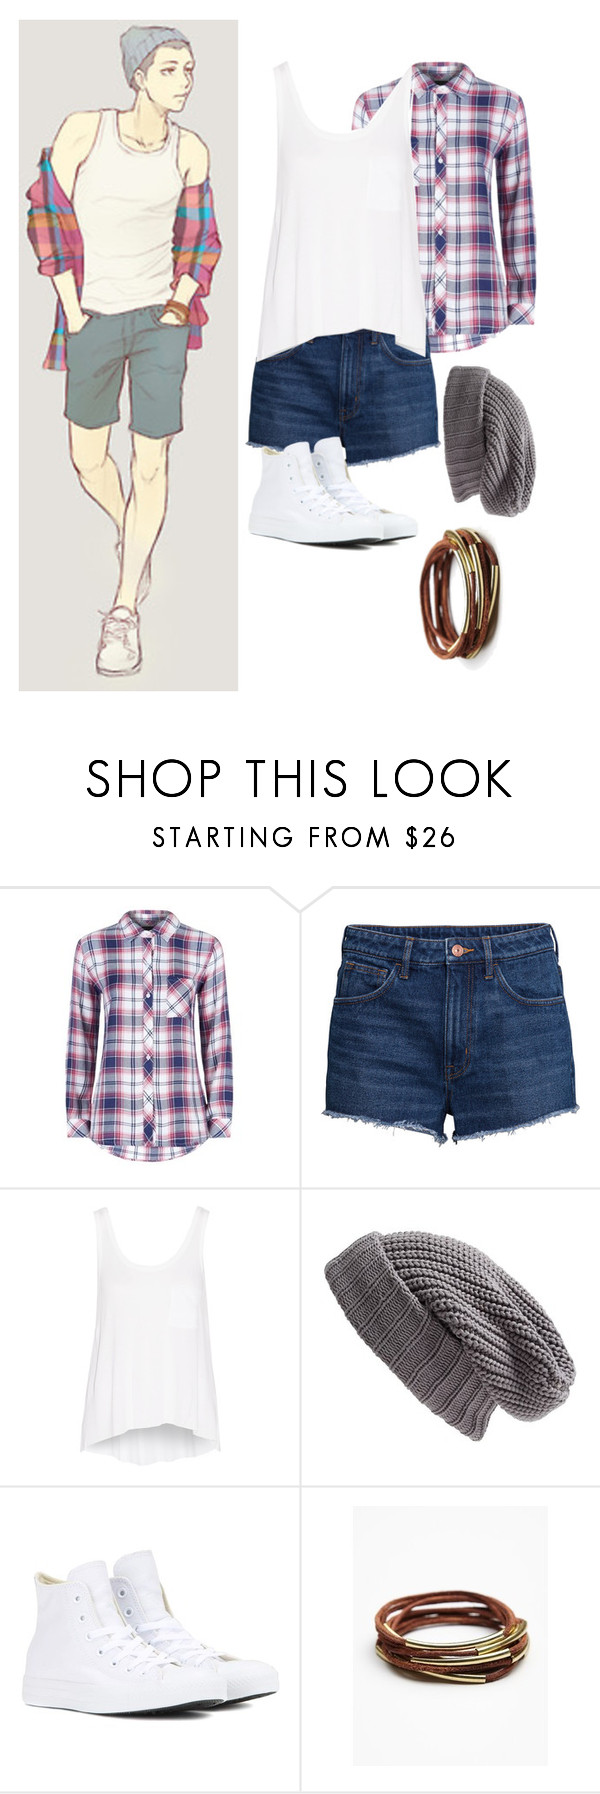 """""""Modern attack on Titan//Connie springer"""" by gglloyd ❤ liked on Polyvore featuring Levi's, Rails, H&M, rag & bone, Treasure & Bond, Converse, Free People and modern"""